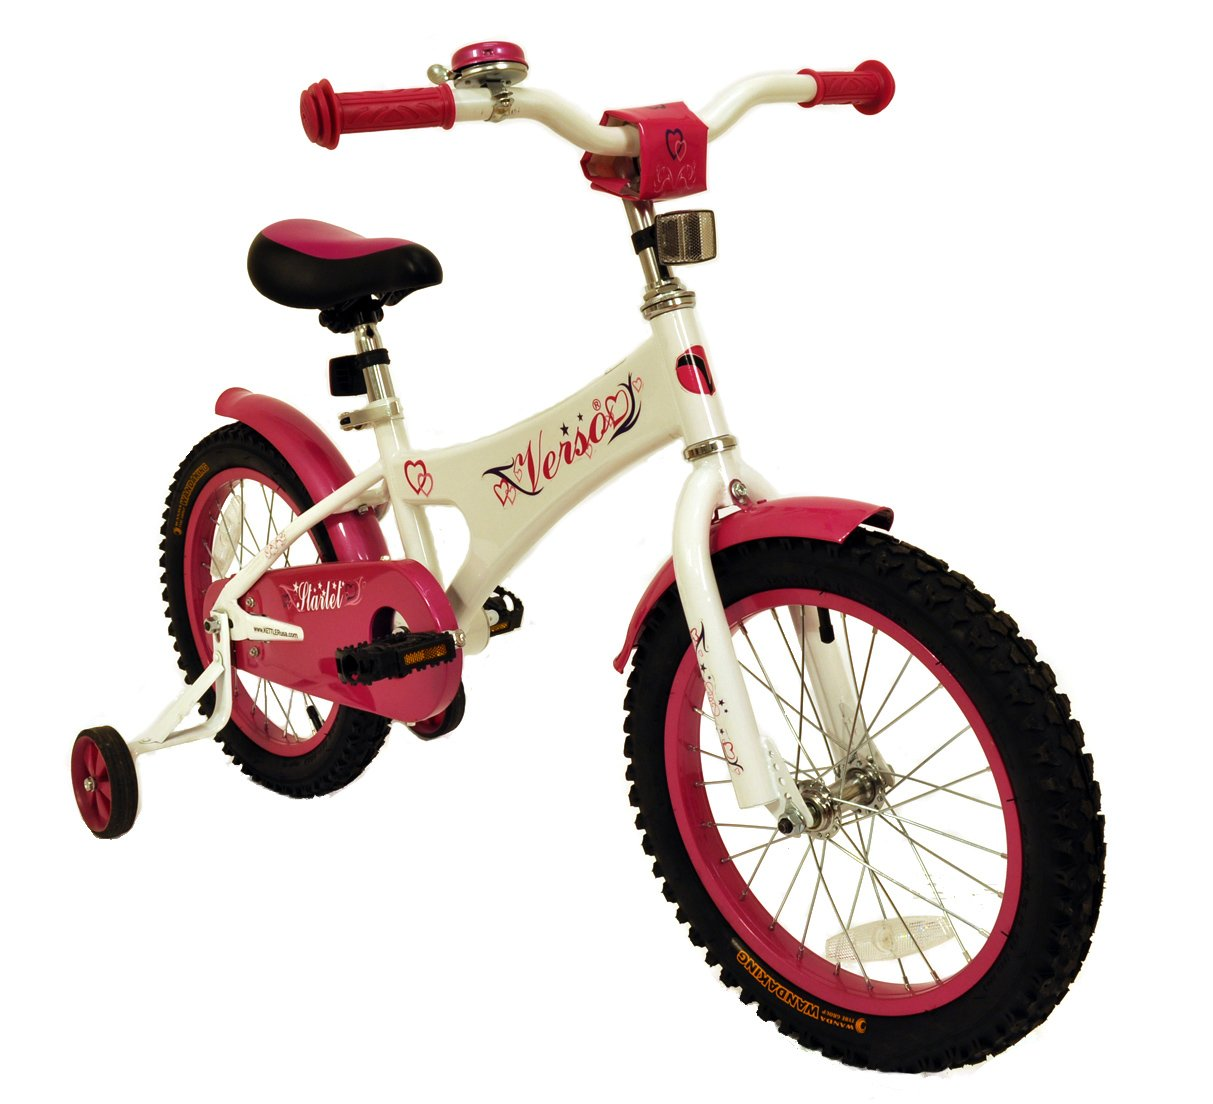 Verso by Kettler 16'' Bike with Removable Training Wheels: Starlet (Rose Pink), Youth Ages 4 to 7 by Kettler